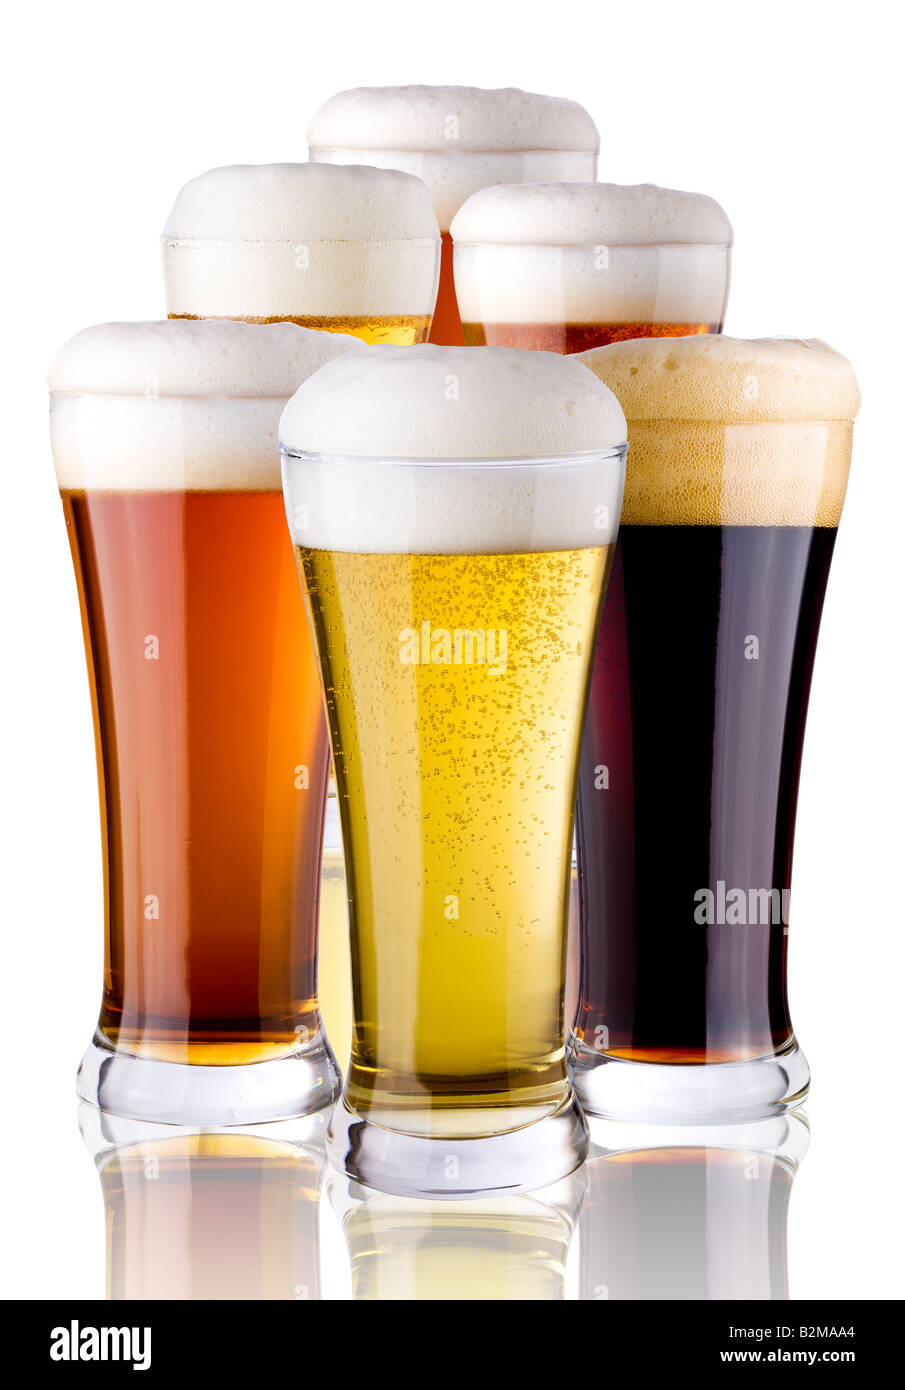 glasses with beer - Stock Image